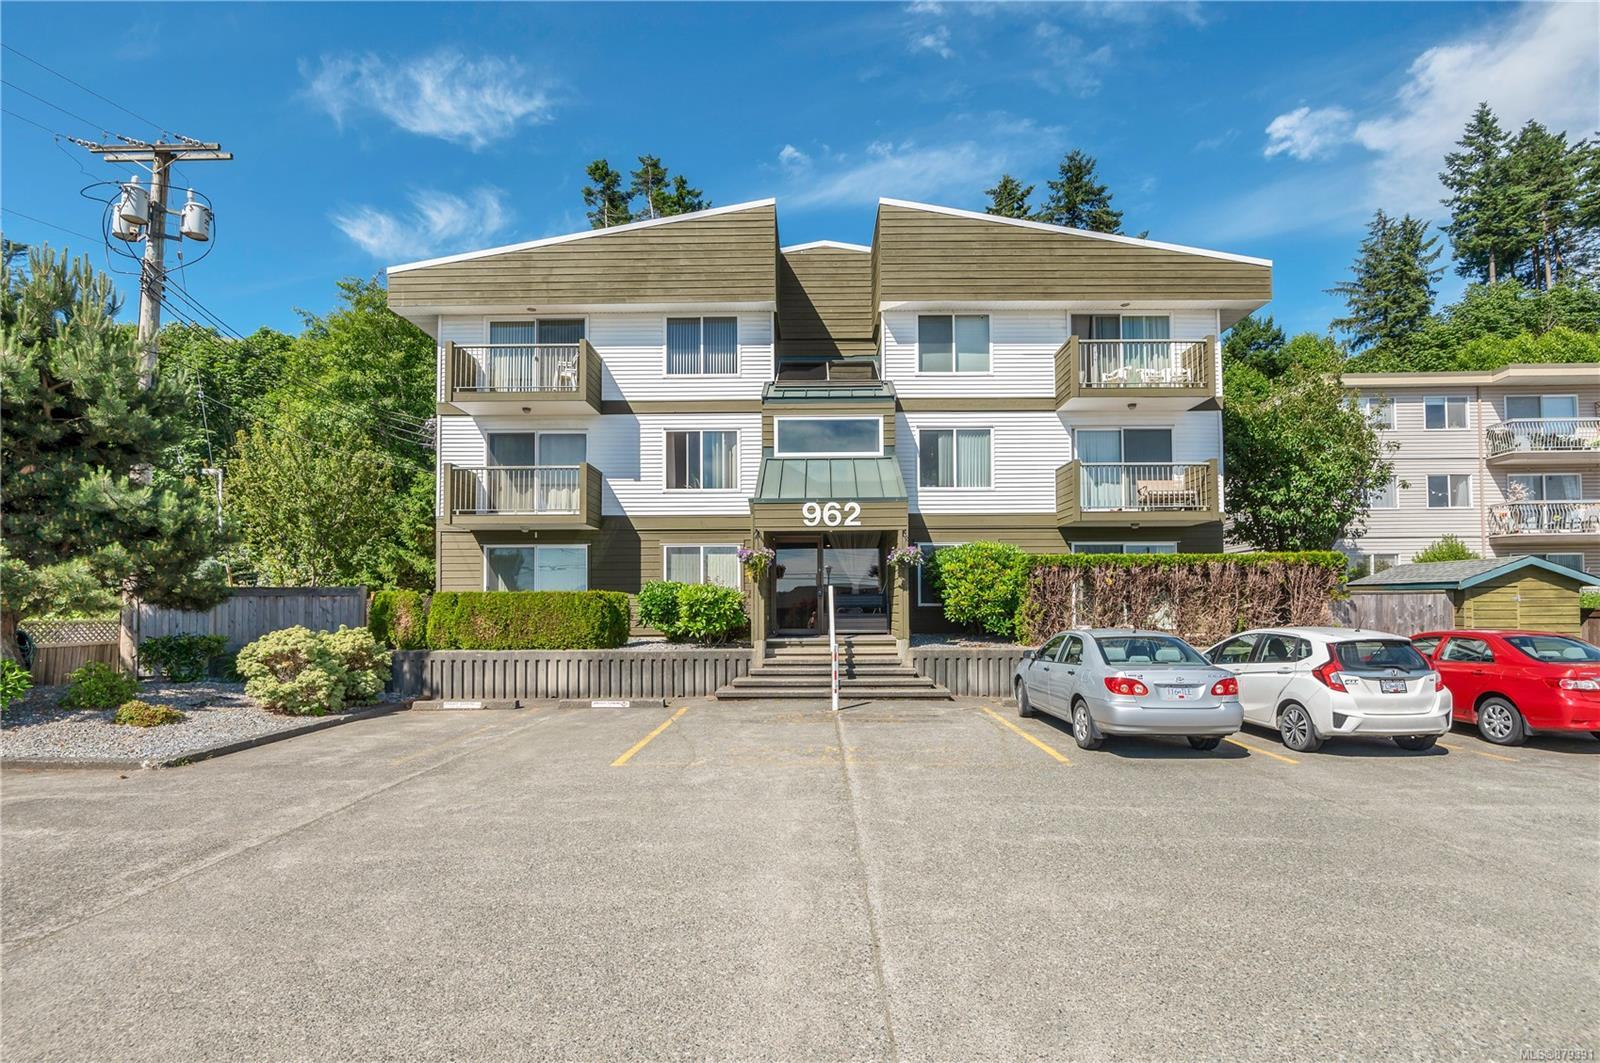 303 - 962 S Island Highway, Campbell River Central, Campbell River